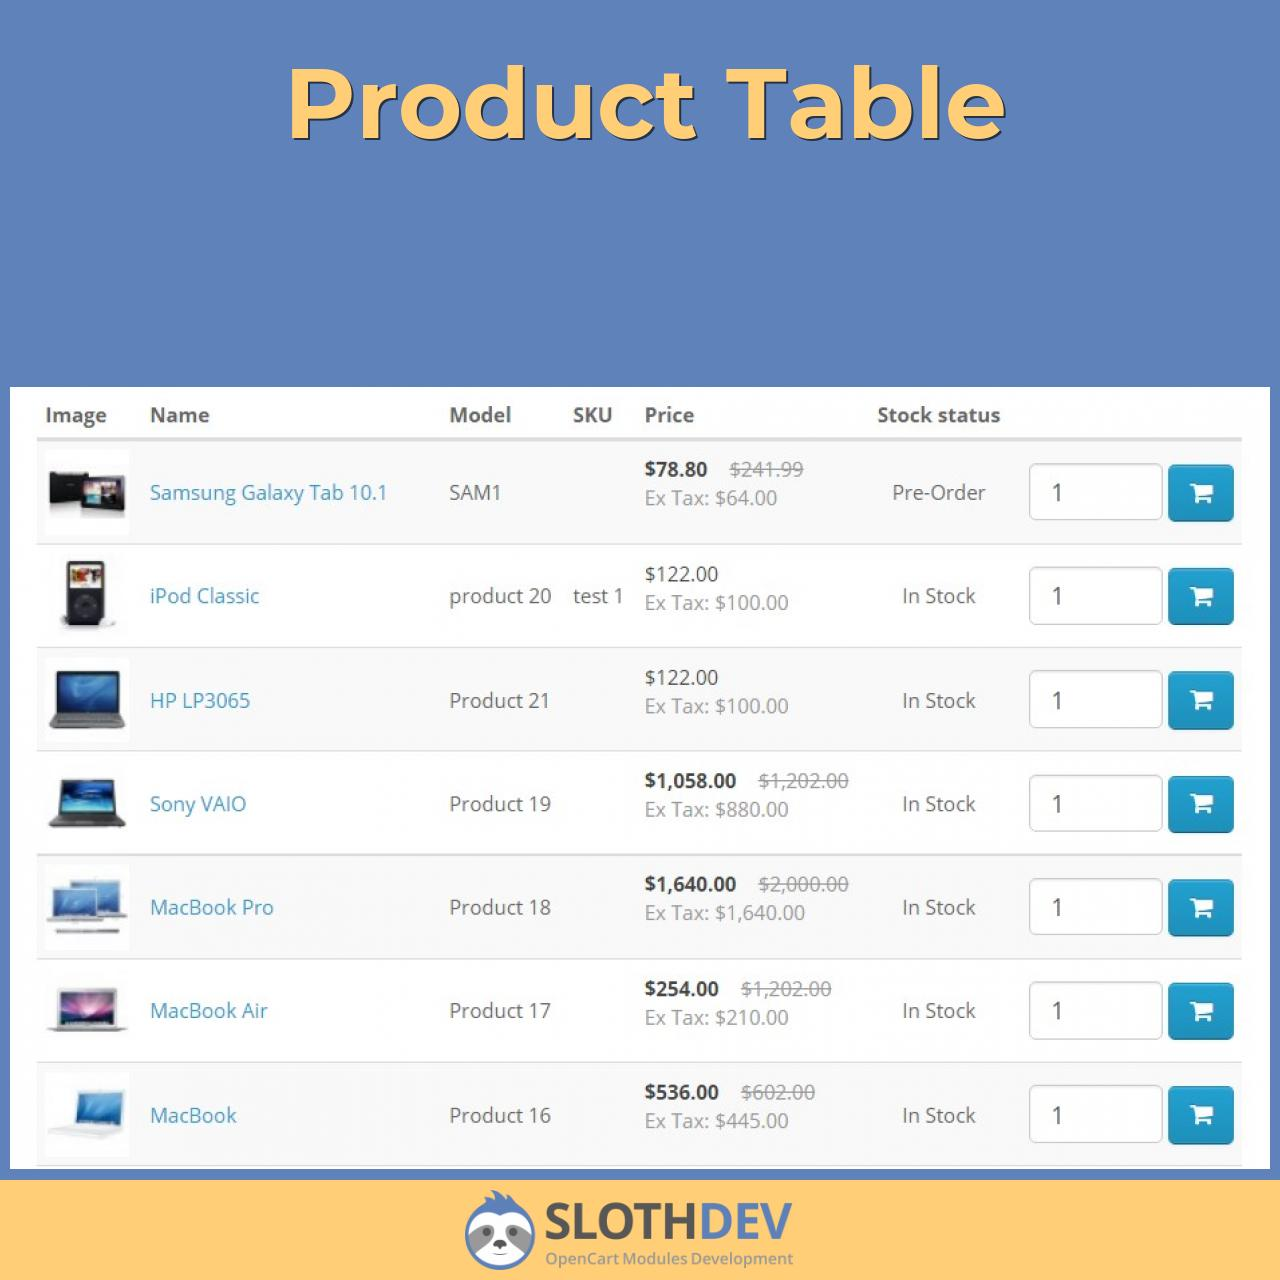 Product Table